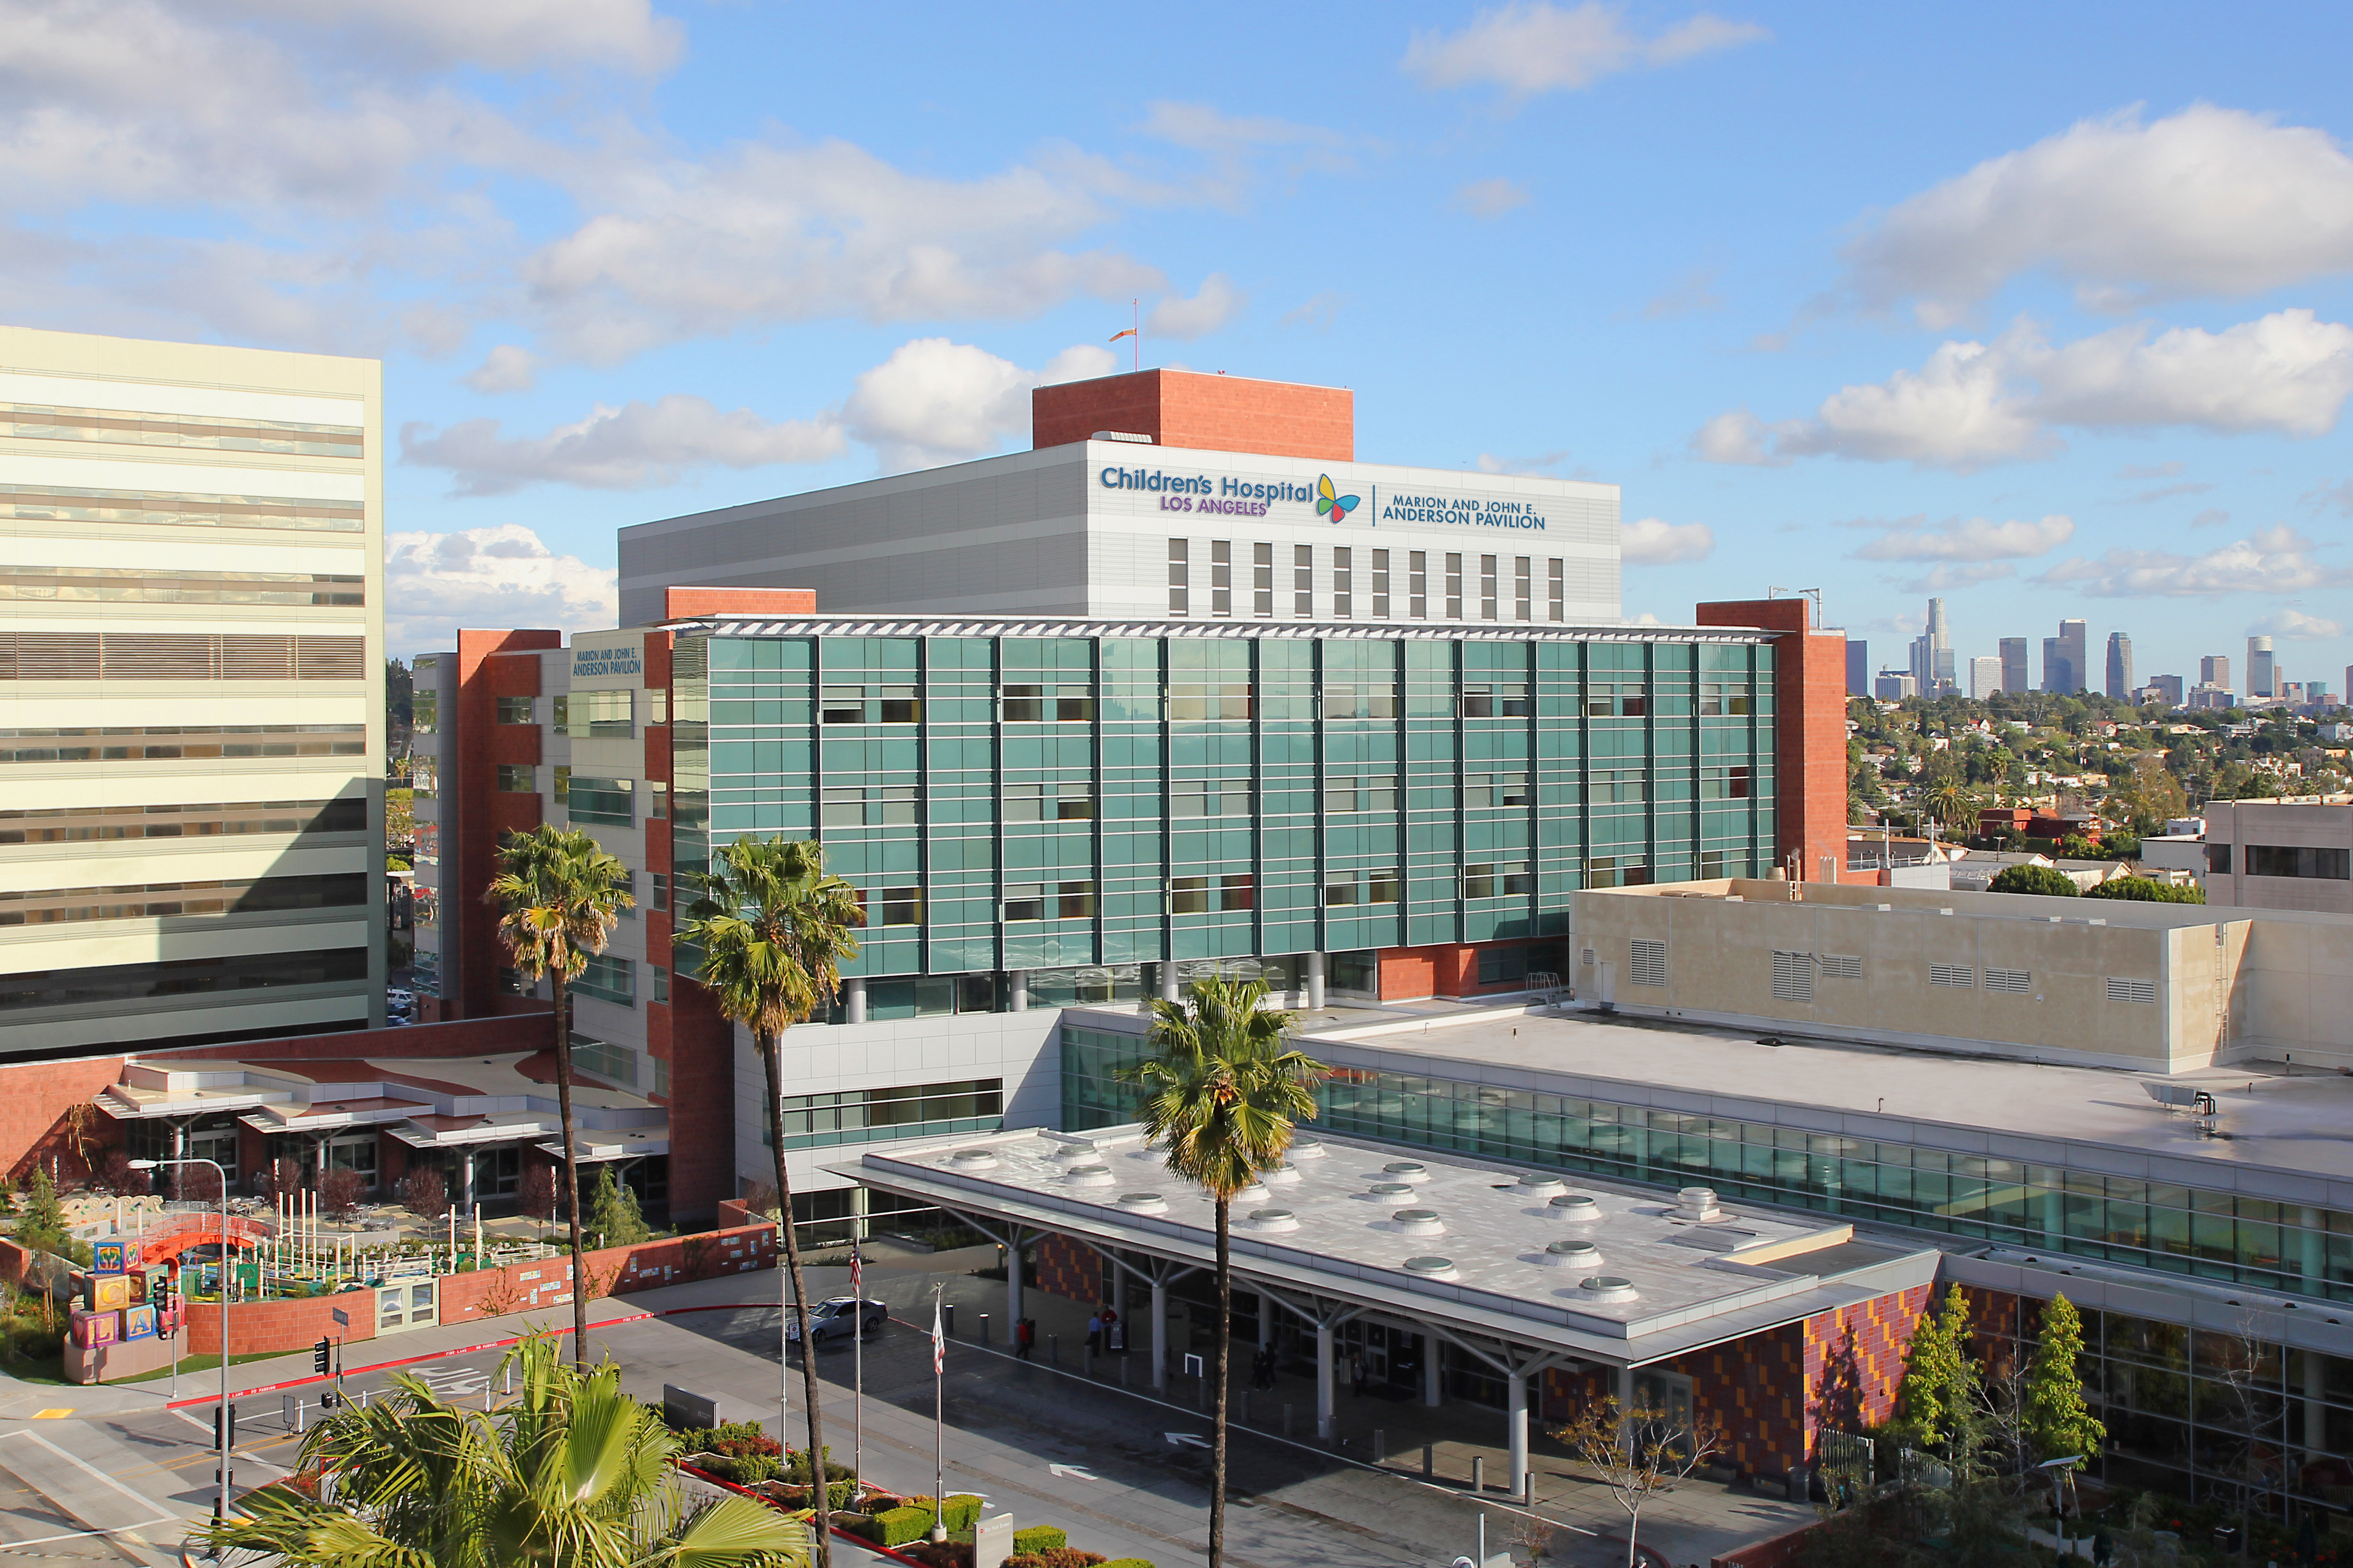 Children's Hospital Los Angeles earns back-to-back top five placements in the U.S. News & World Report survey of best children's hospitals in the United States. It is the only children's hospital on the West Coast to receive the distinction. (Photo: Business Wire)